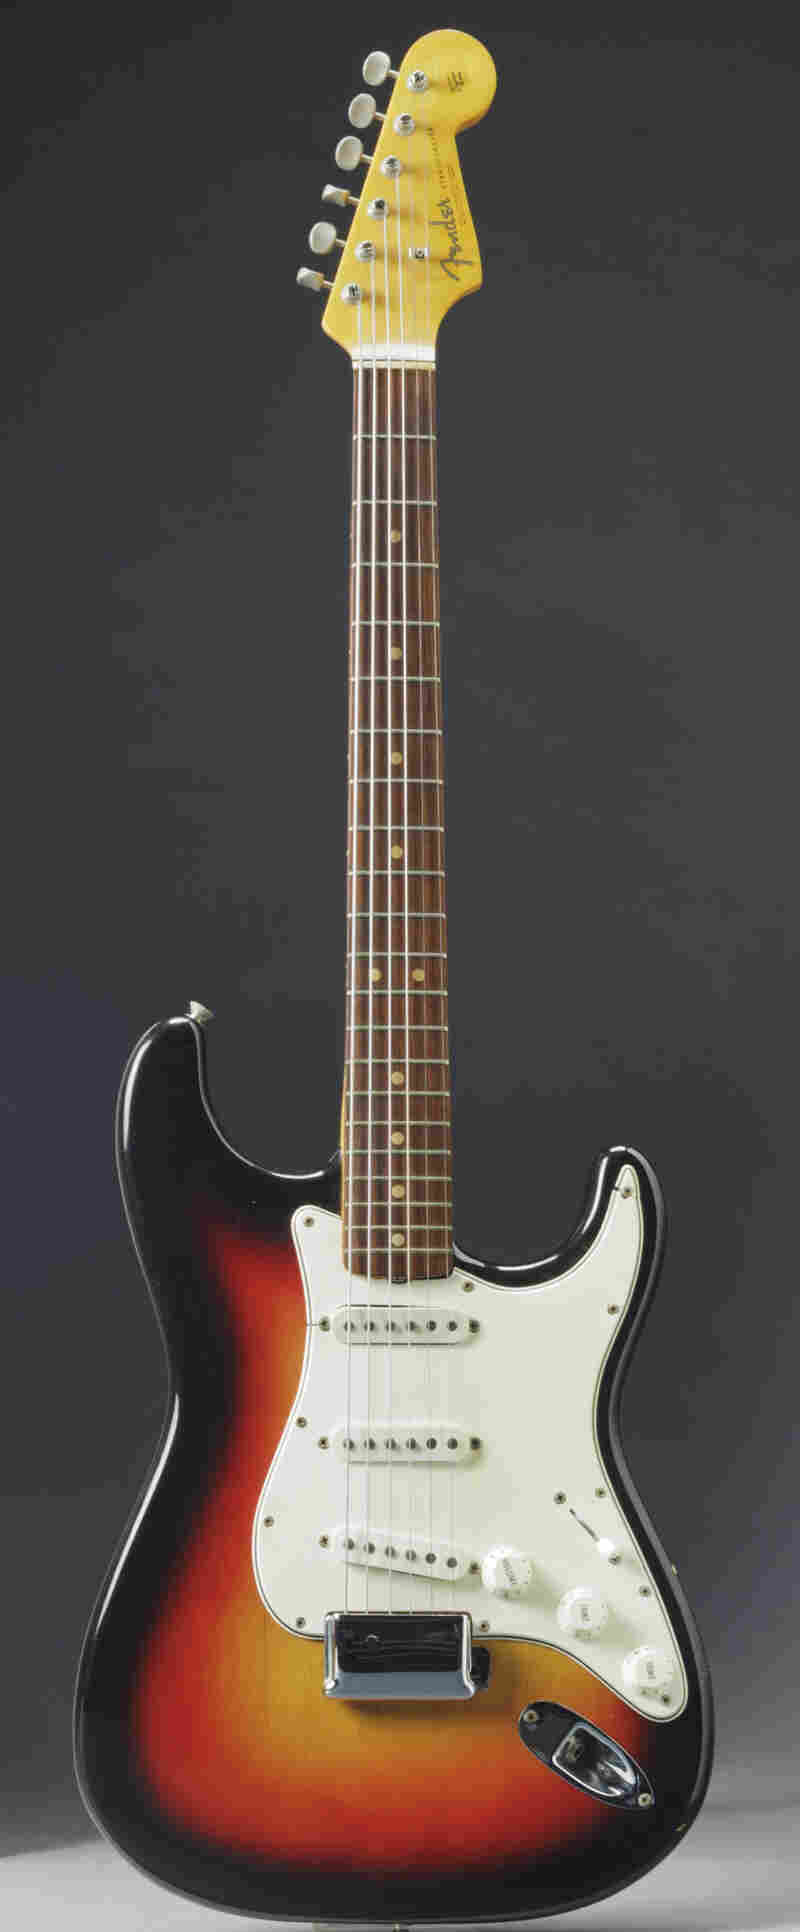 """The Fender Stratocaster that's going on sale next month and may fetch $500,000 because experts say it was played by Bob Dylan when he """"went electric"""" at the 1965 Newport Folk Festival."""